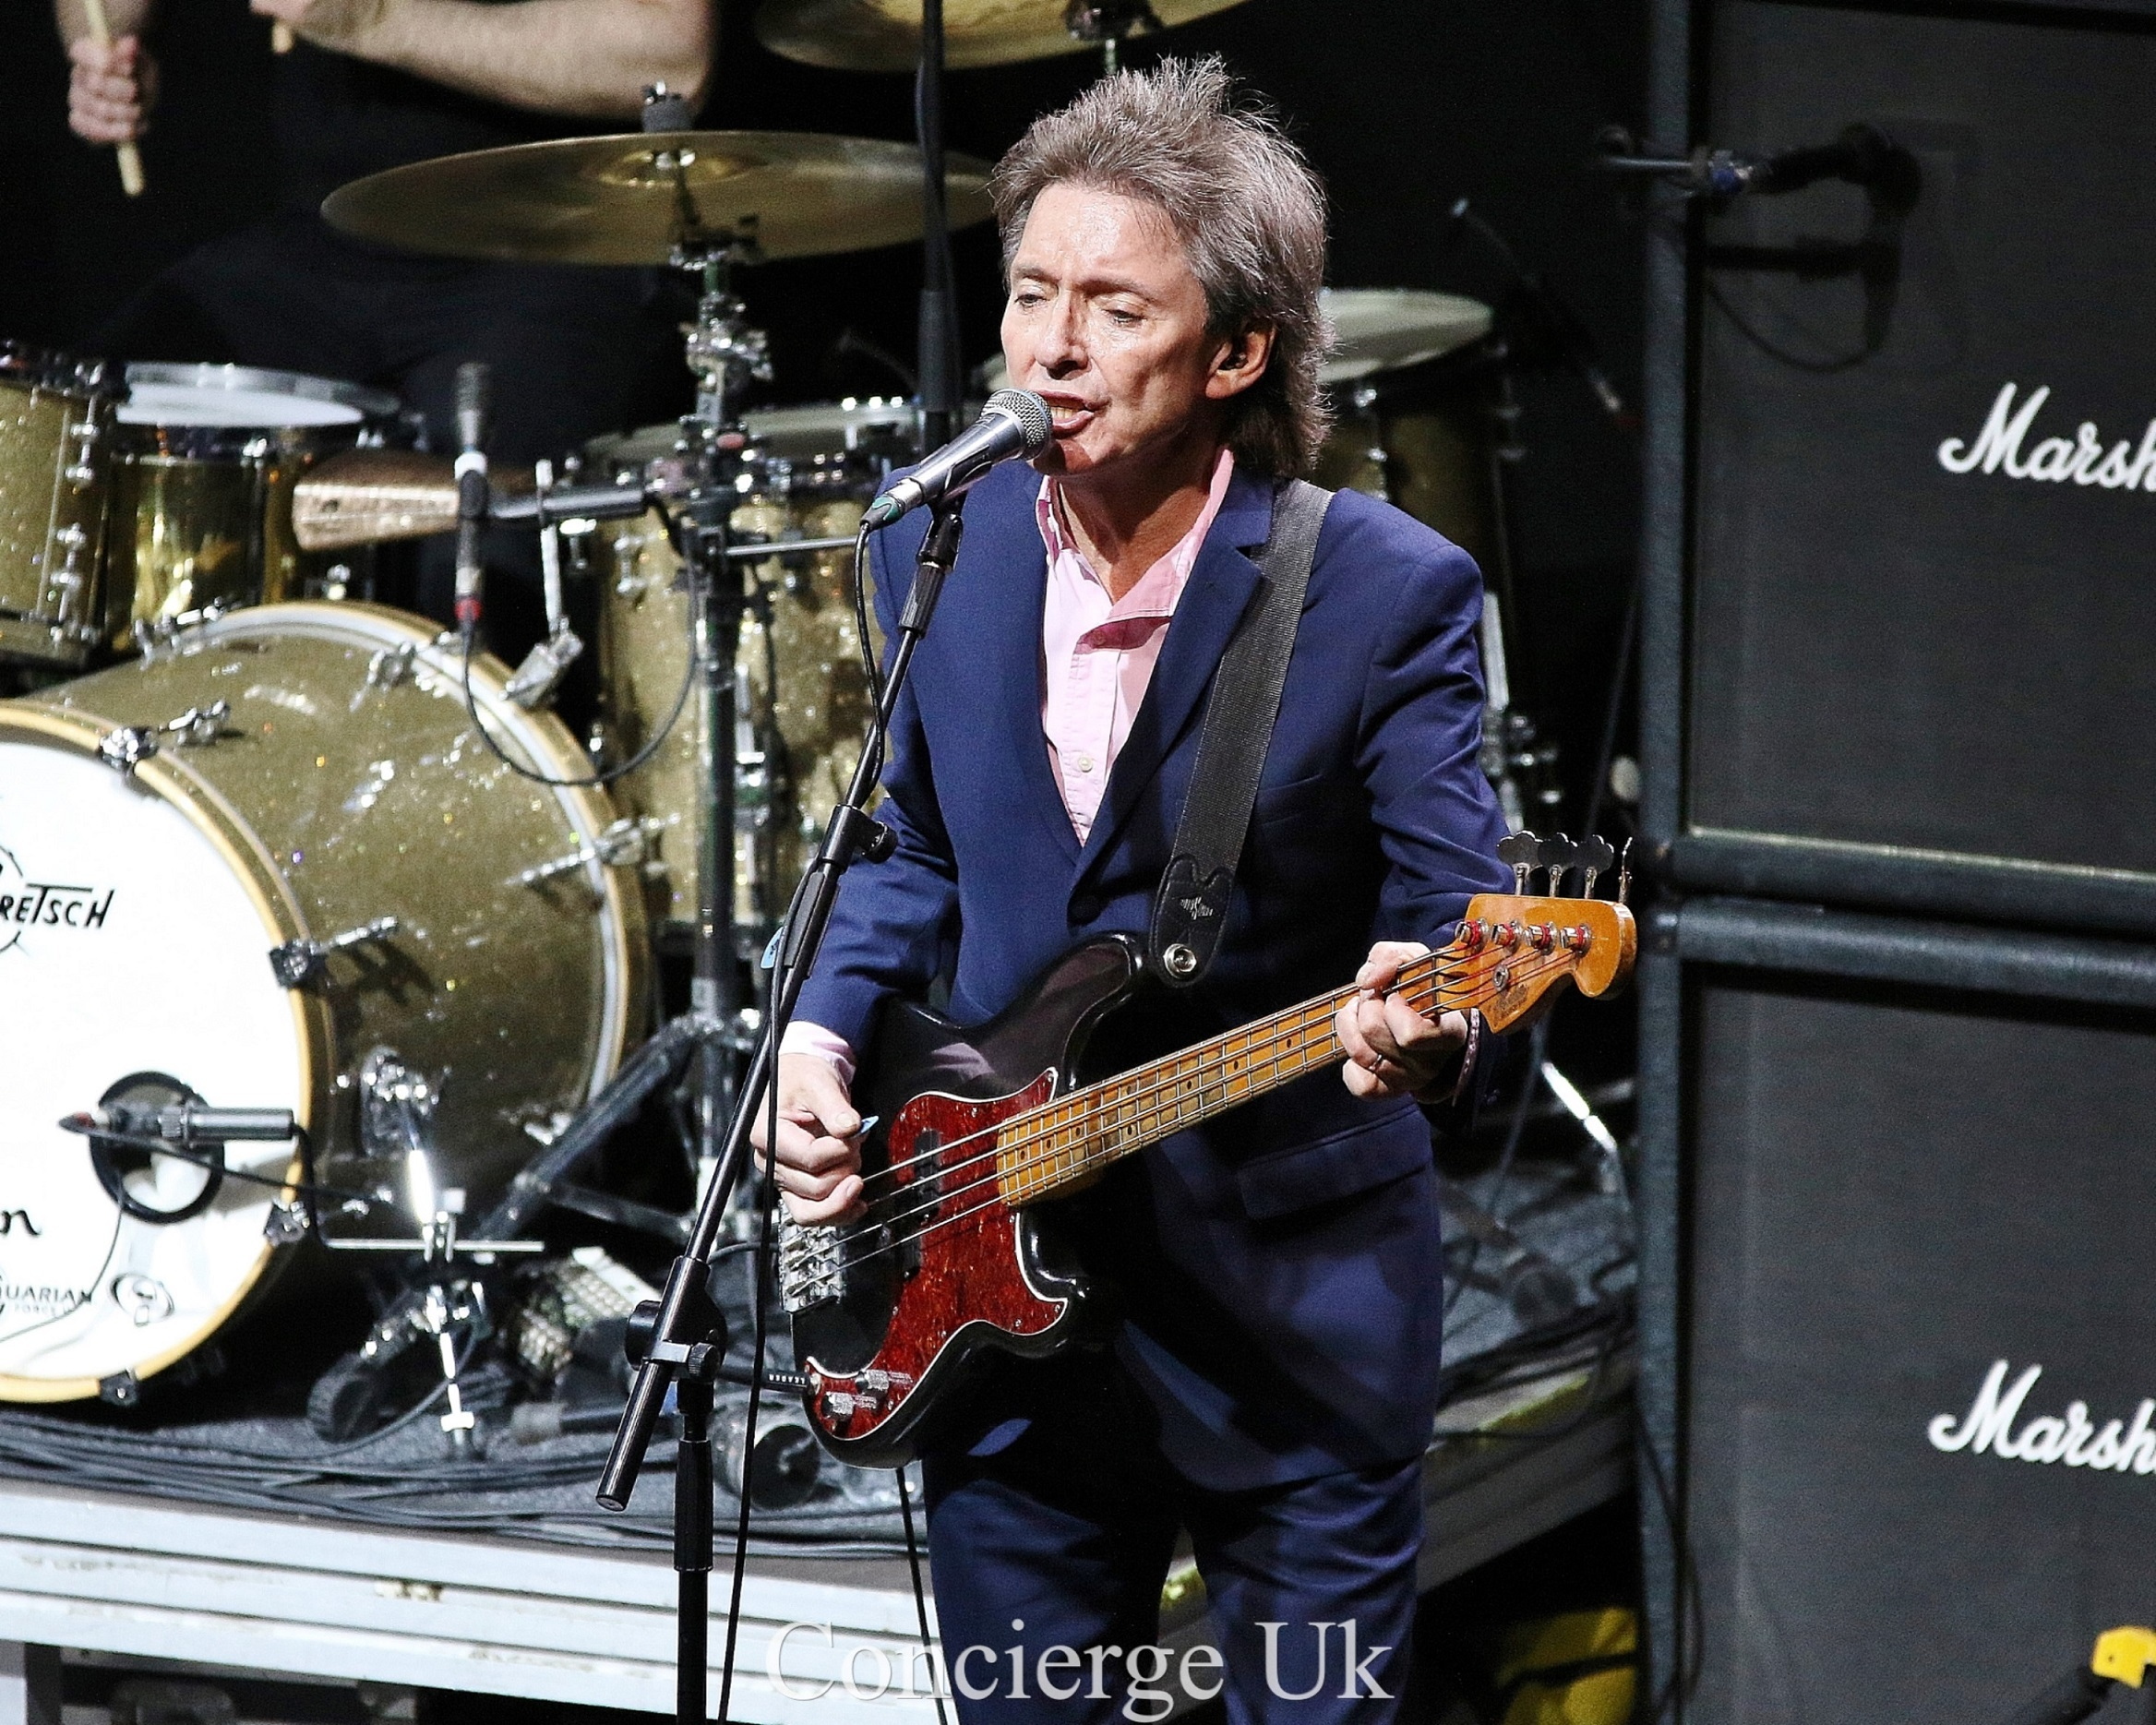 FROM THE JAM: Show rescheduled to April 25